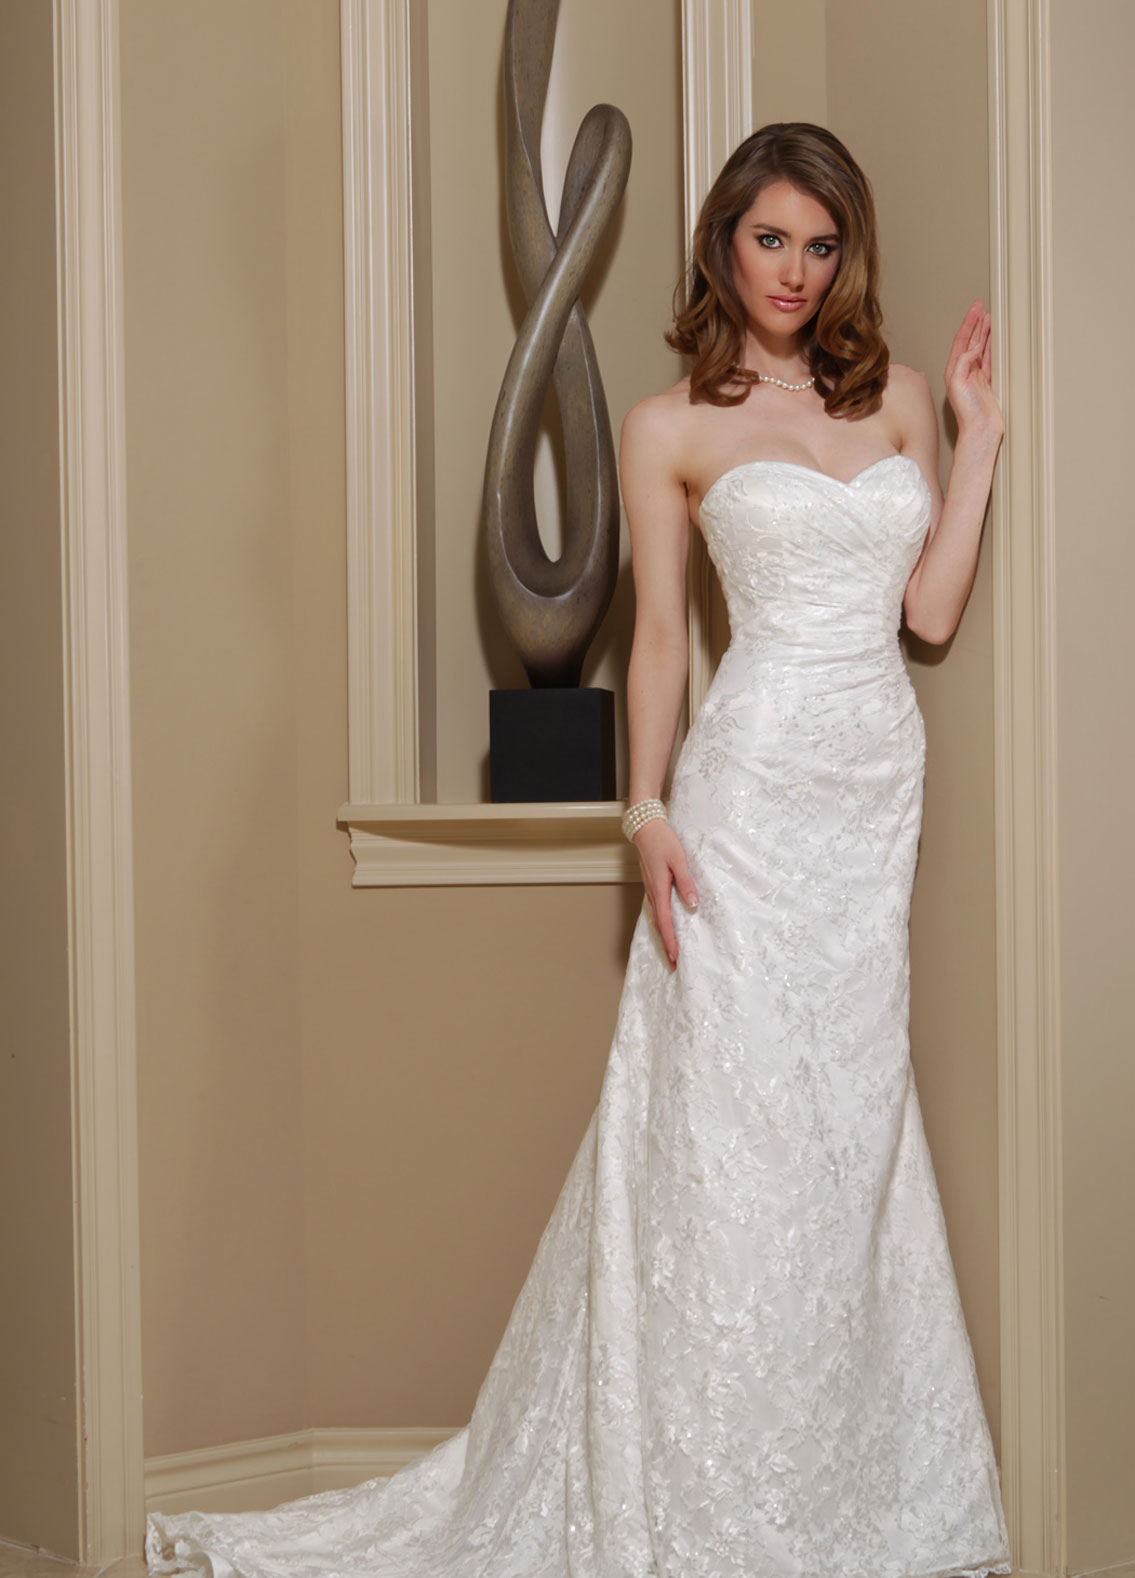 DaVinci Bridal Dresses